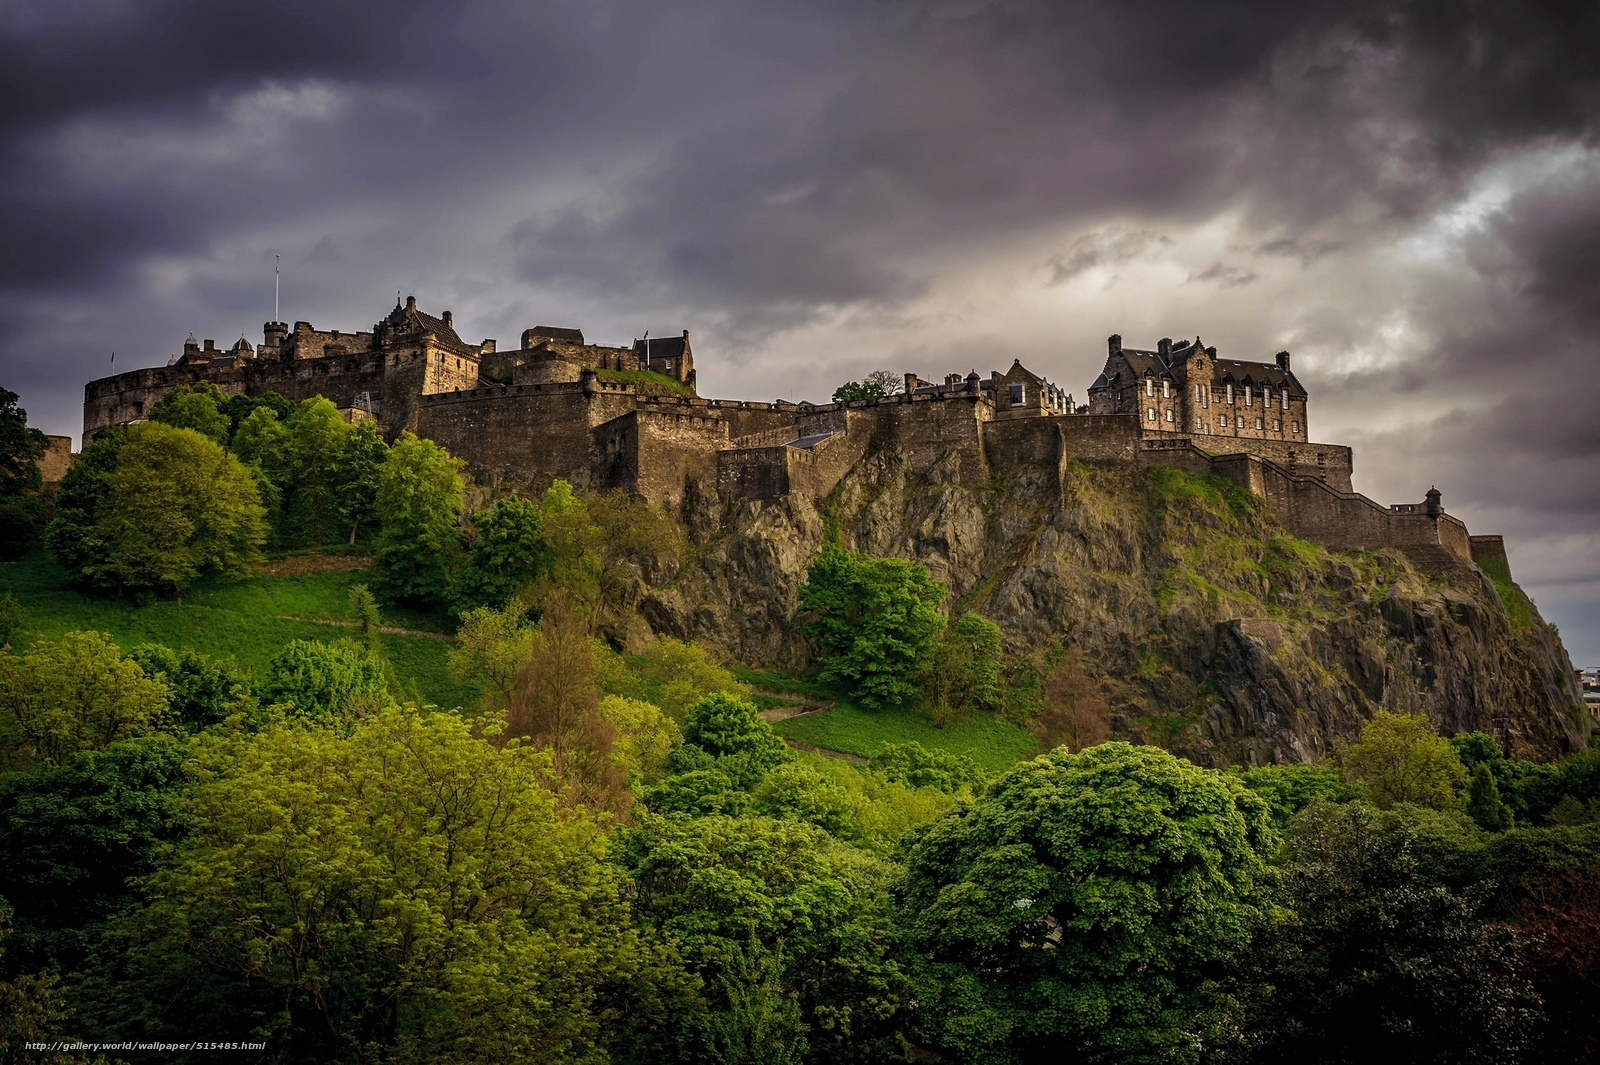 edinburgh scotland wallpaper - photo #17